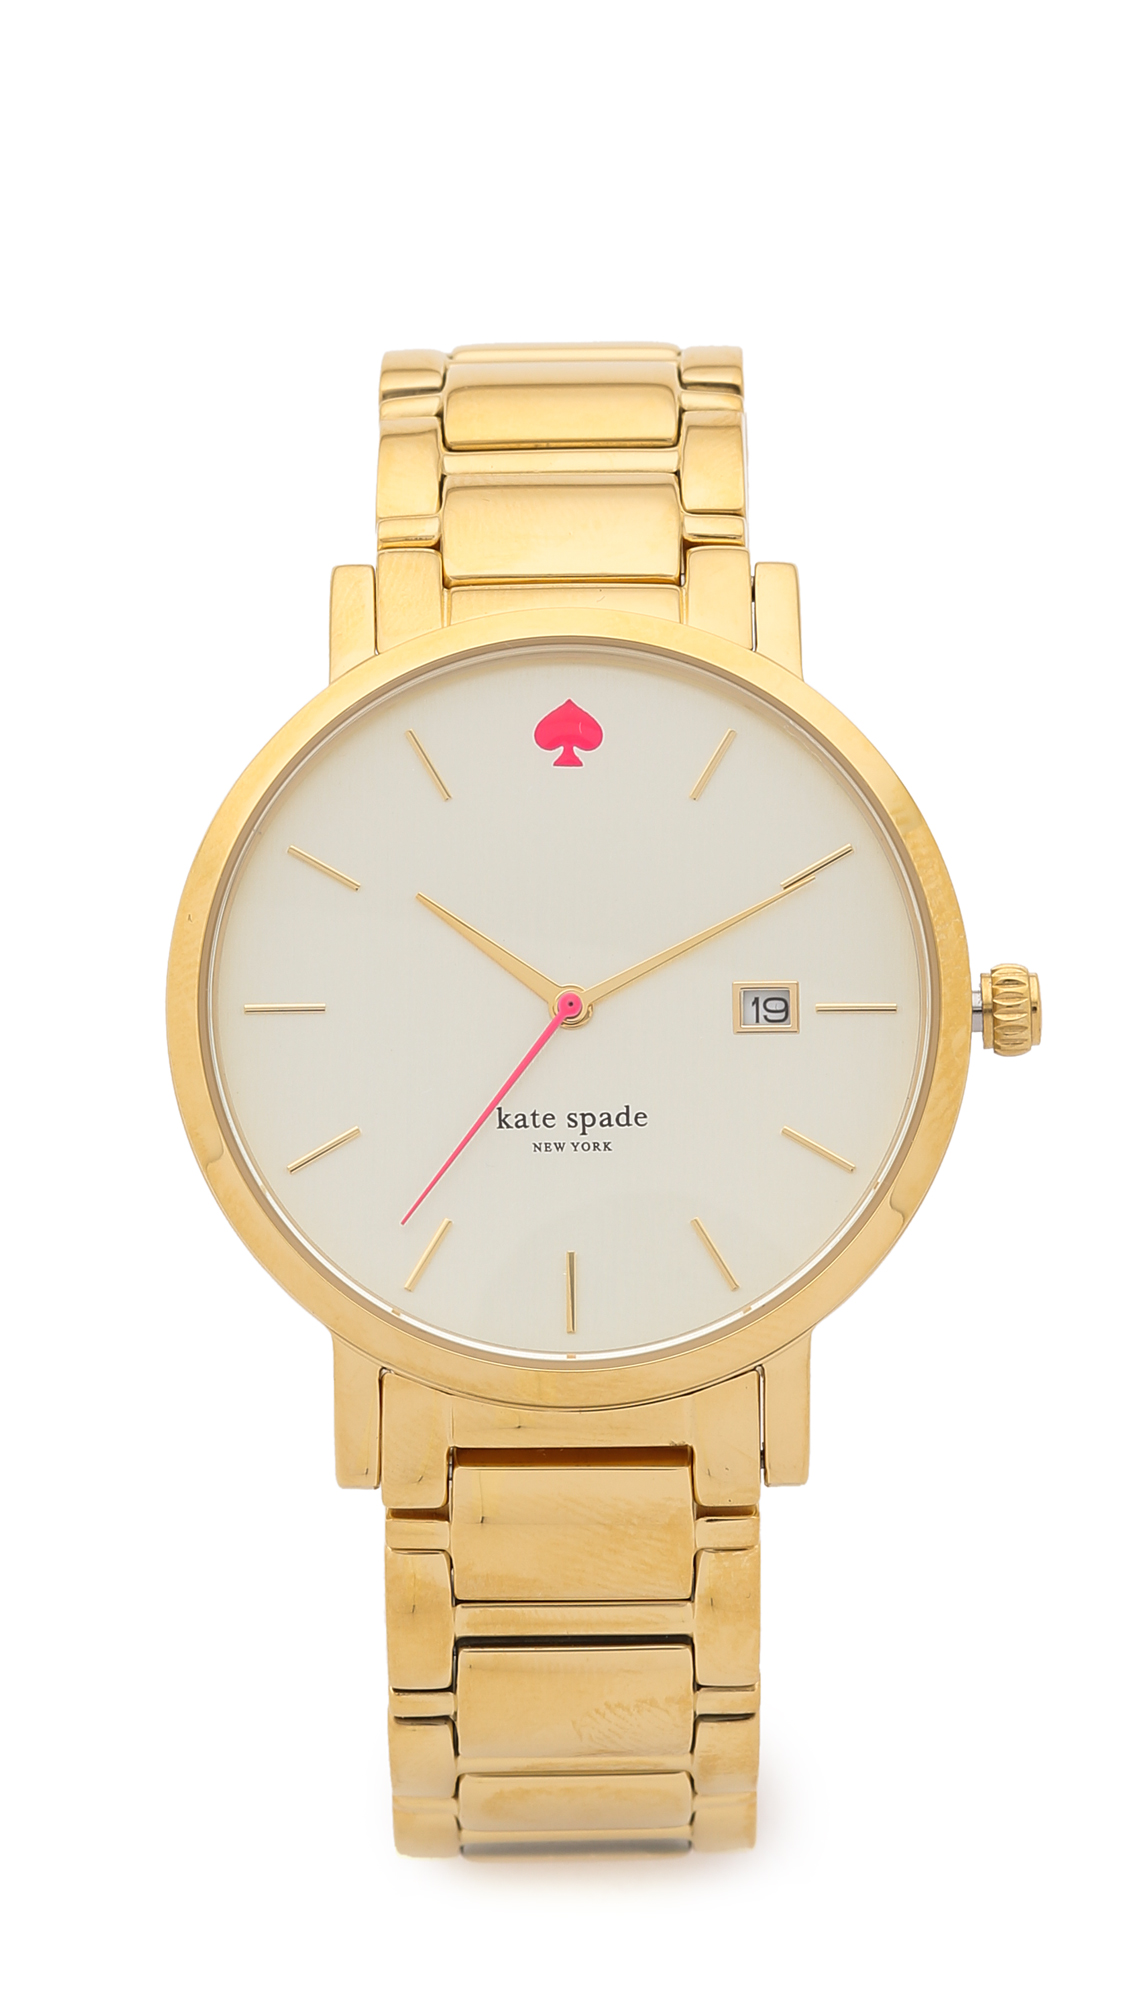 Kate Spade New York Gramercy Grand Bracelet Watch - Gold at Shopbop